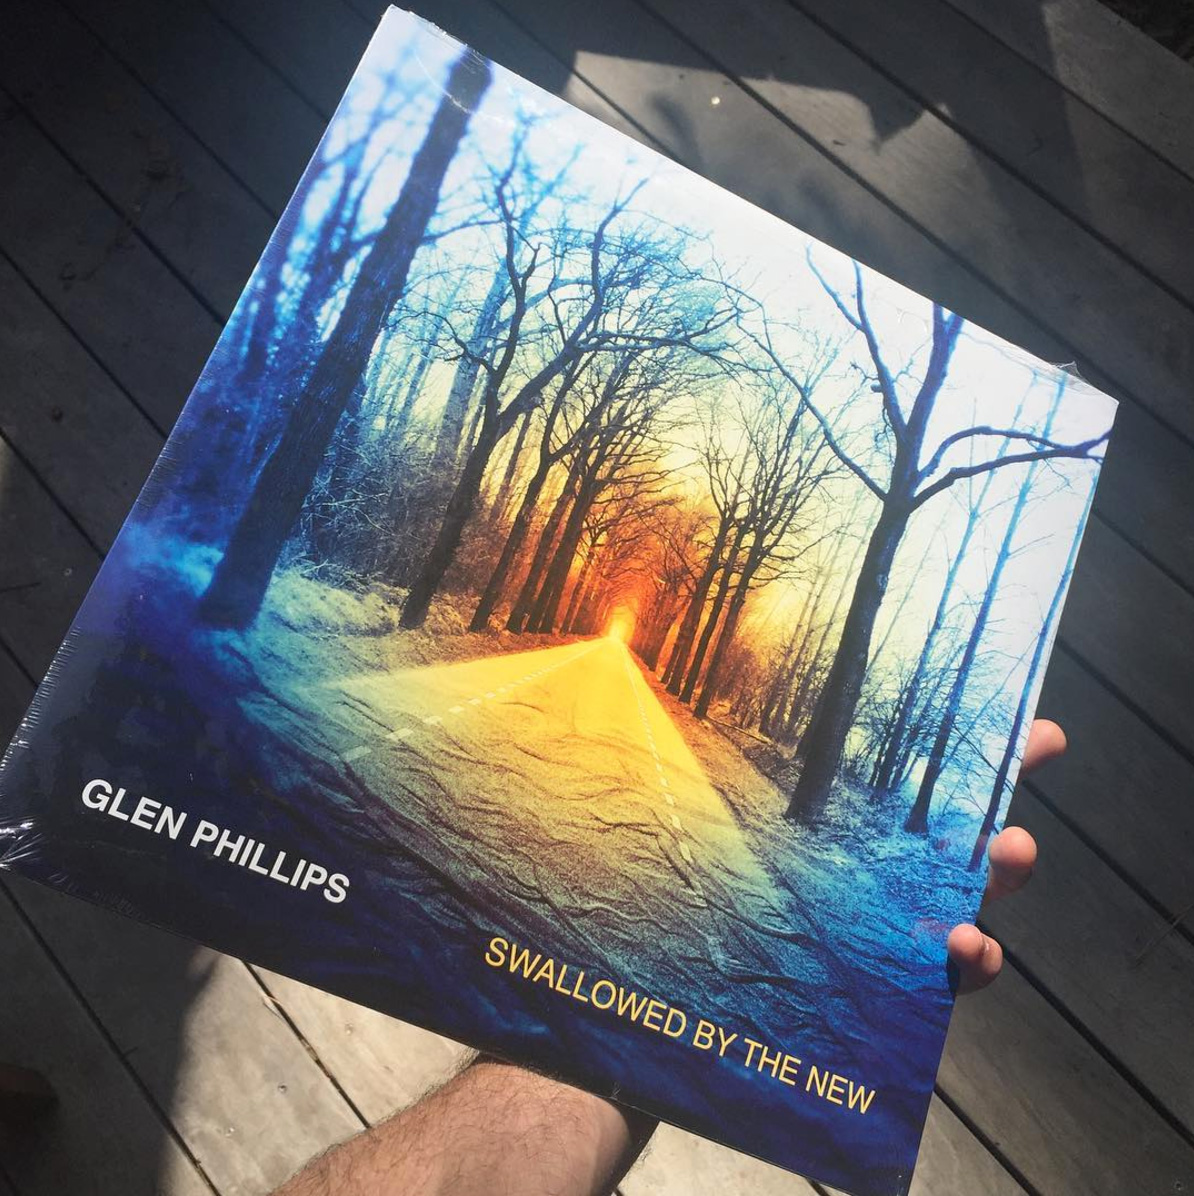 Swallowed By The New - Glen Phillips